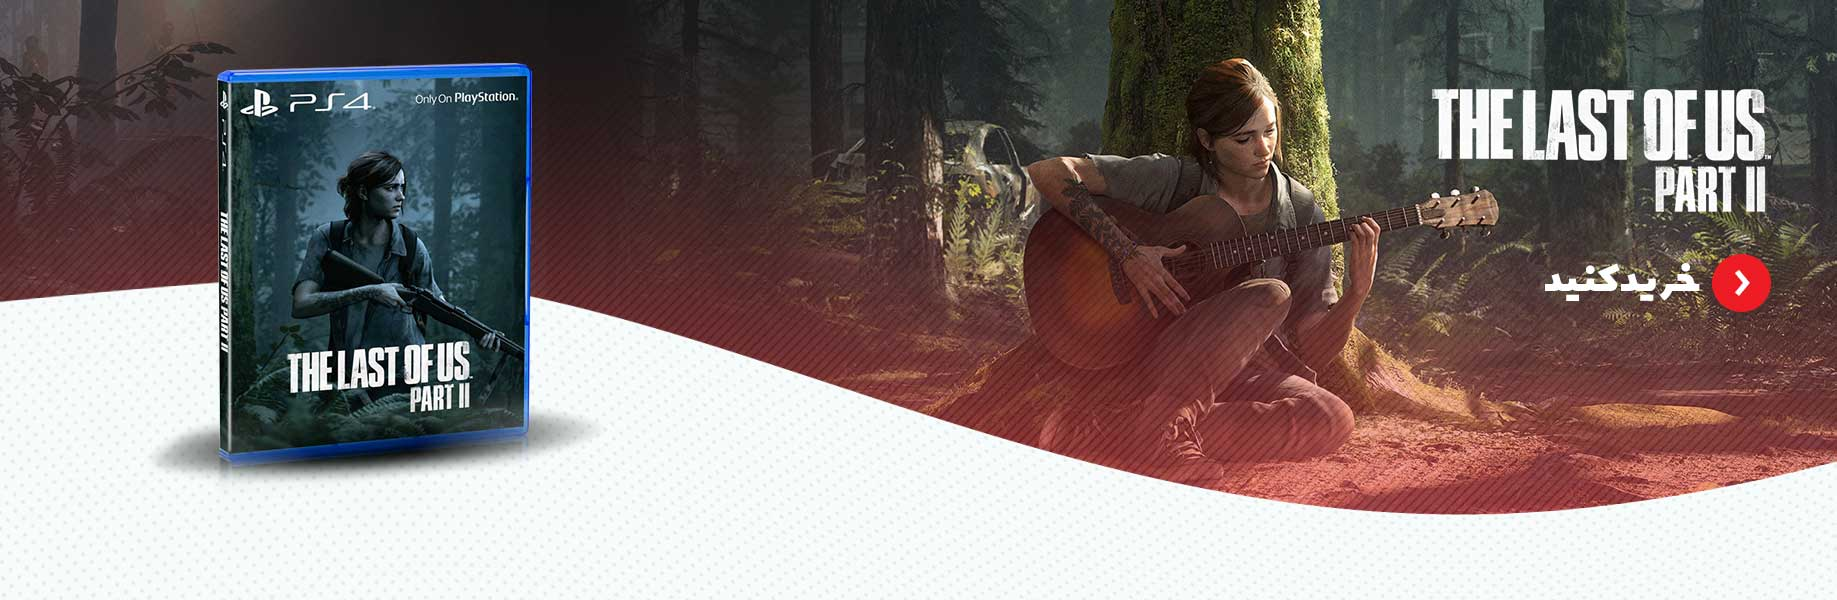 خرید بازی The Last Of Us 2